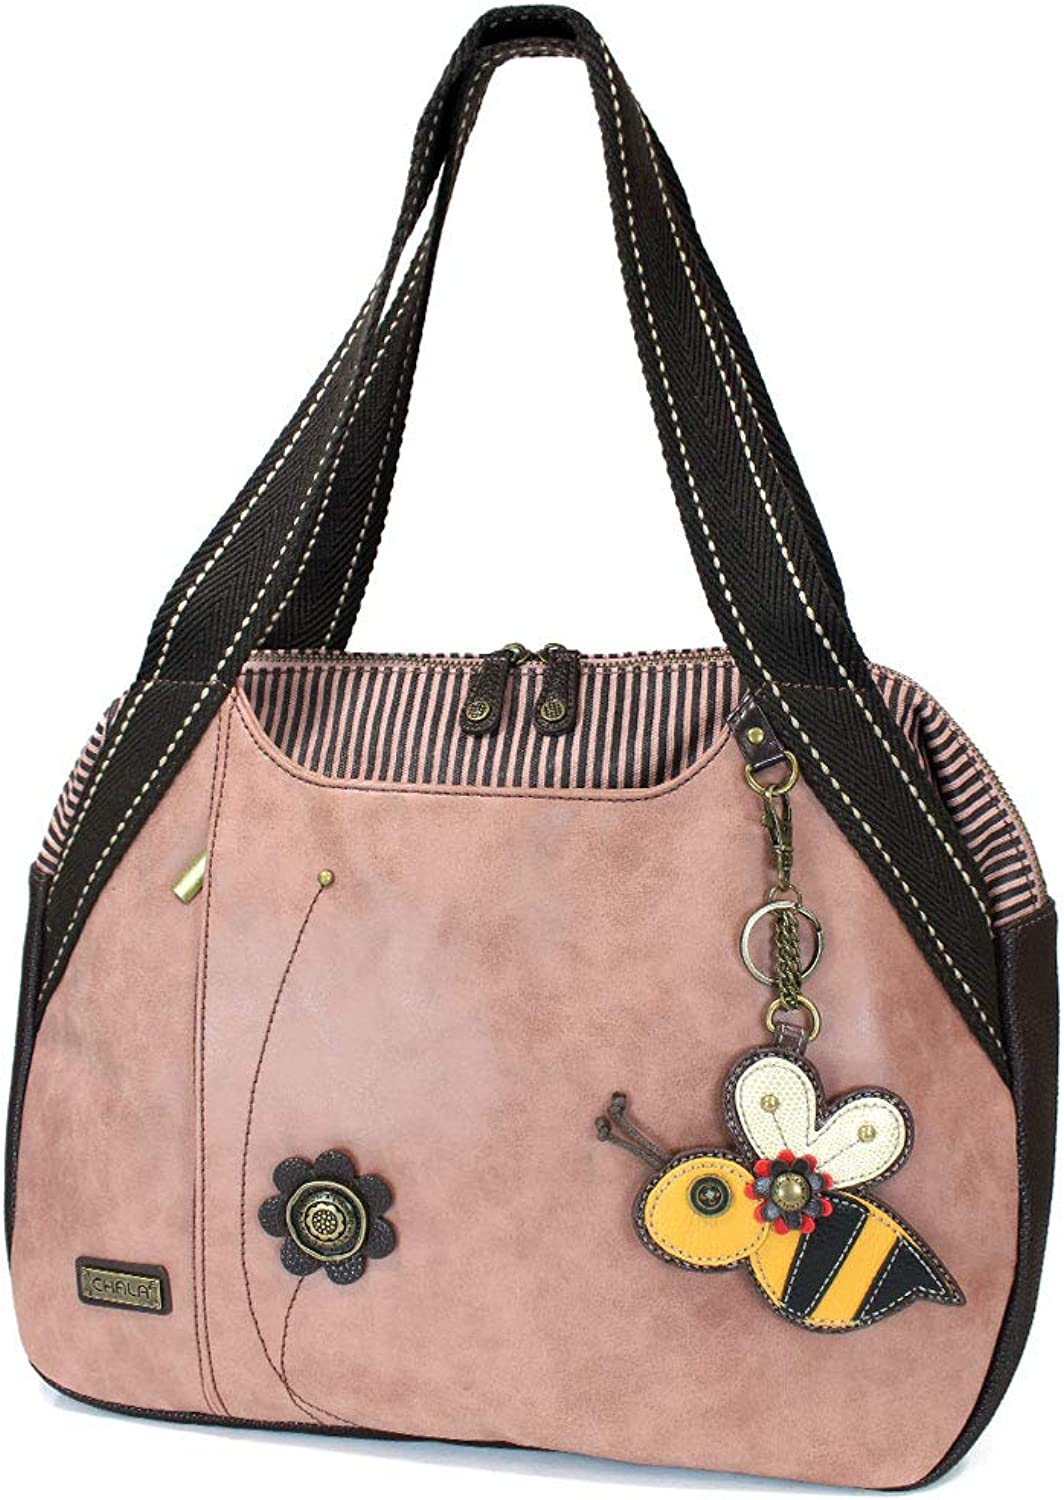 CHALA Handbag Bowling Zip Tote Large Bag Pleather Dusty pink Pink Gift BEE fob